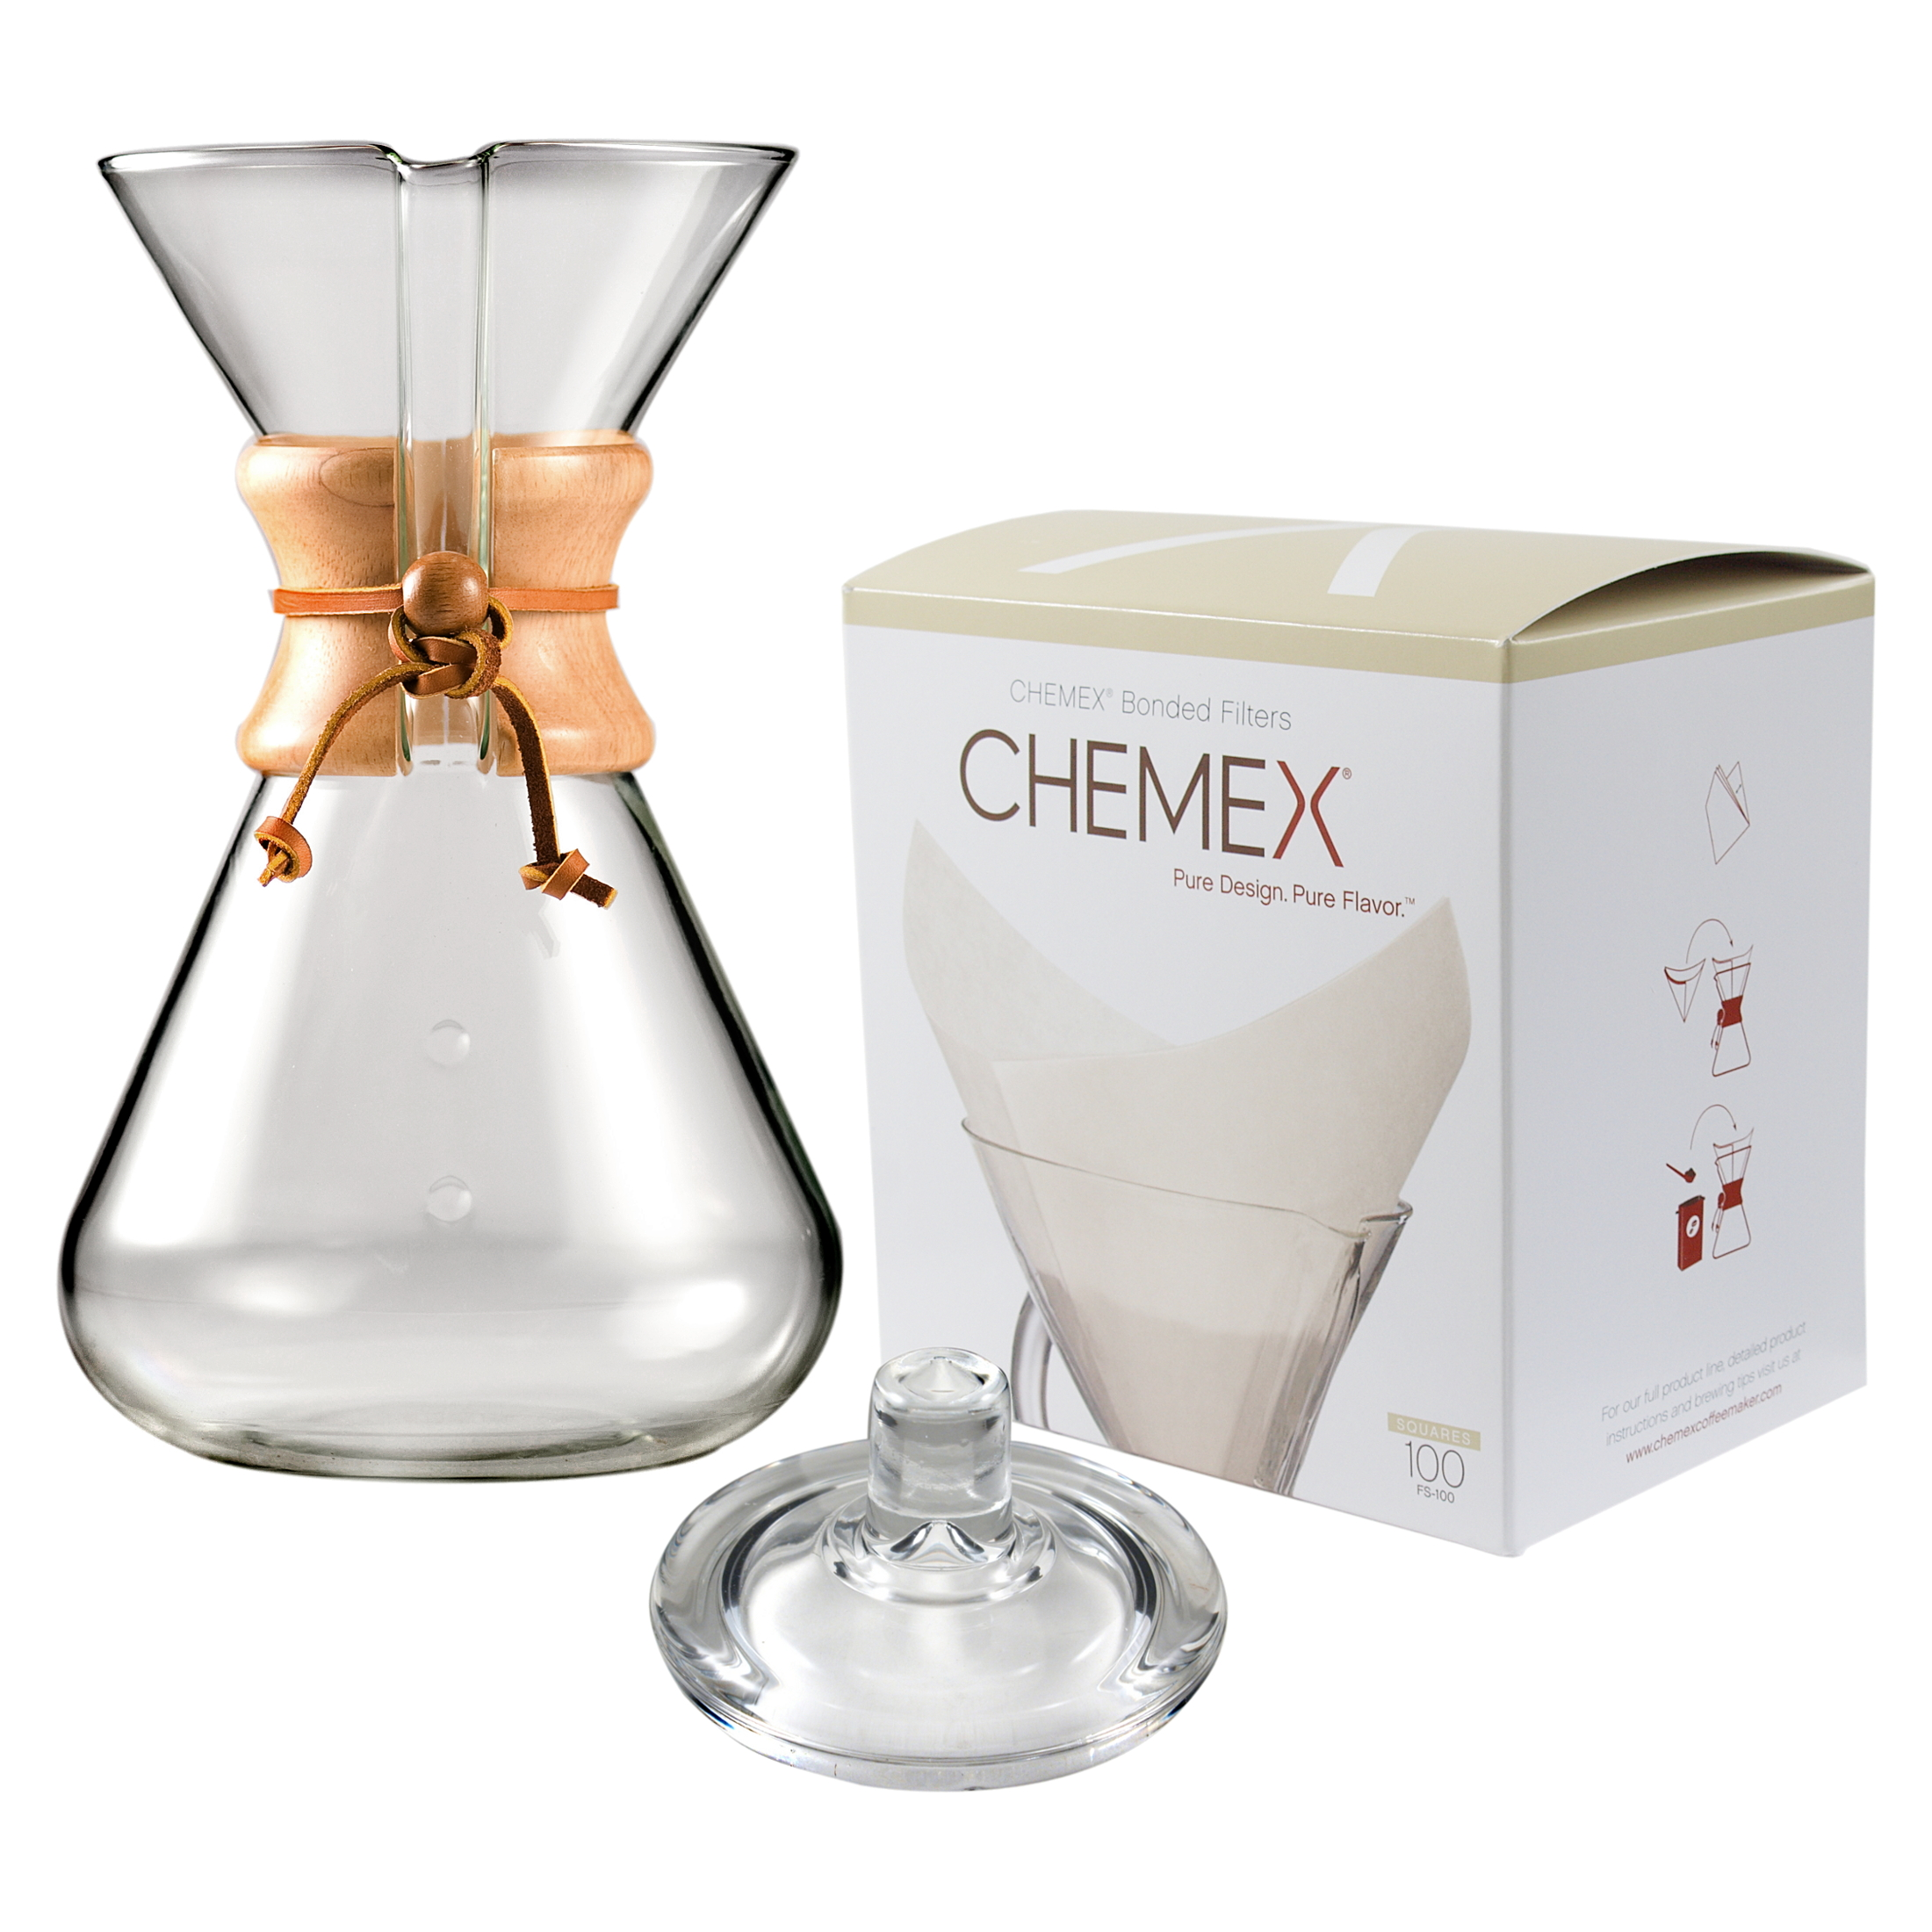 Chemex Wood Collar and Tie Glass 65 Ounce Coffee Maker with Cover and 100 Count Oxygen Cleansed Bonded Square Coffee Filters